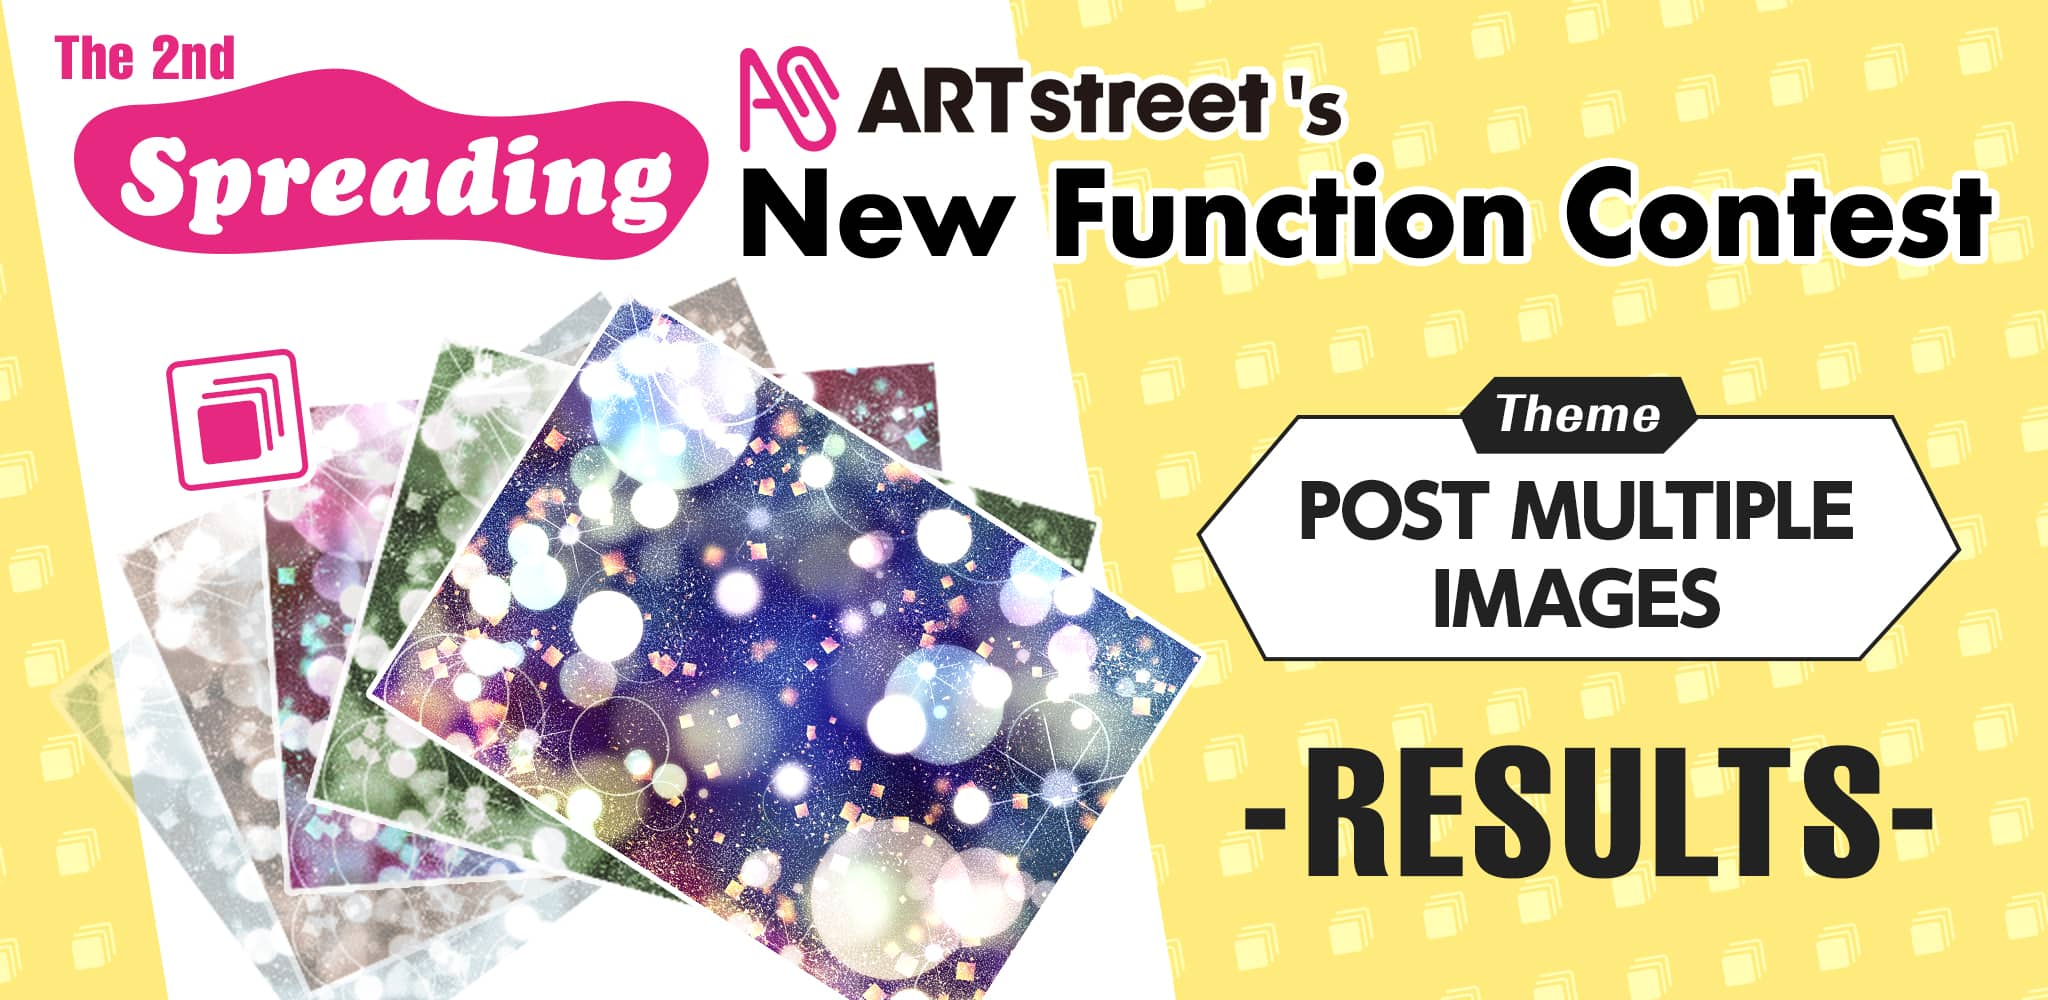 Spreading ART street's New Function Contest Round 2 Theme: Post multiple images| Contest - ART street by MediBang